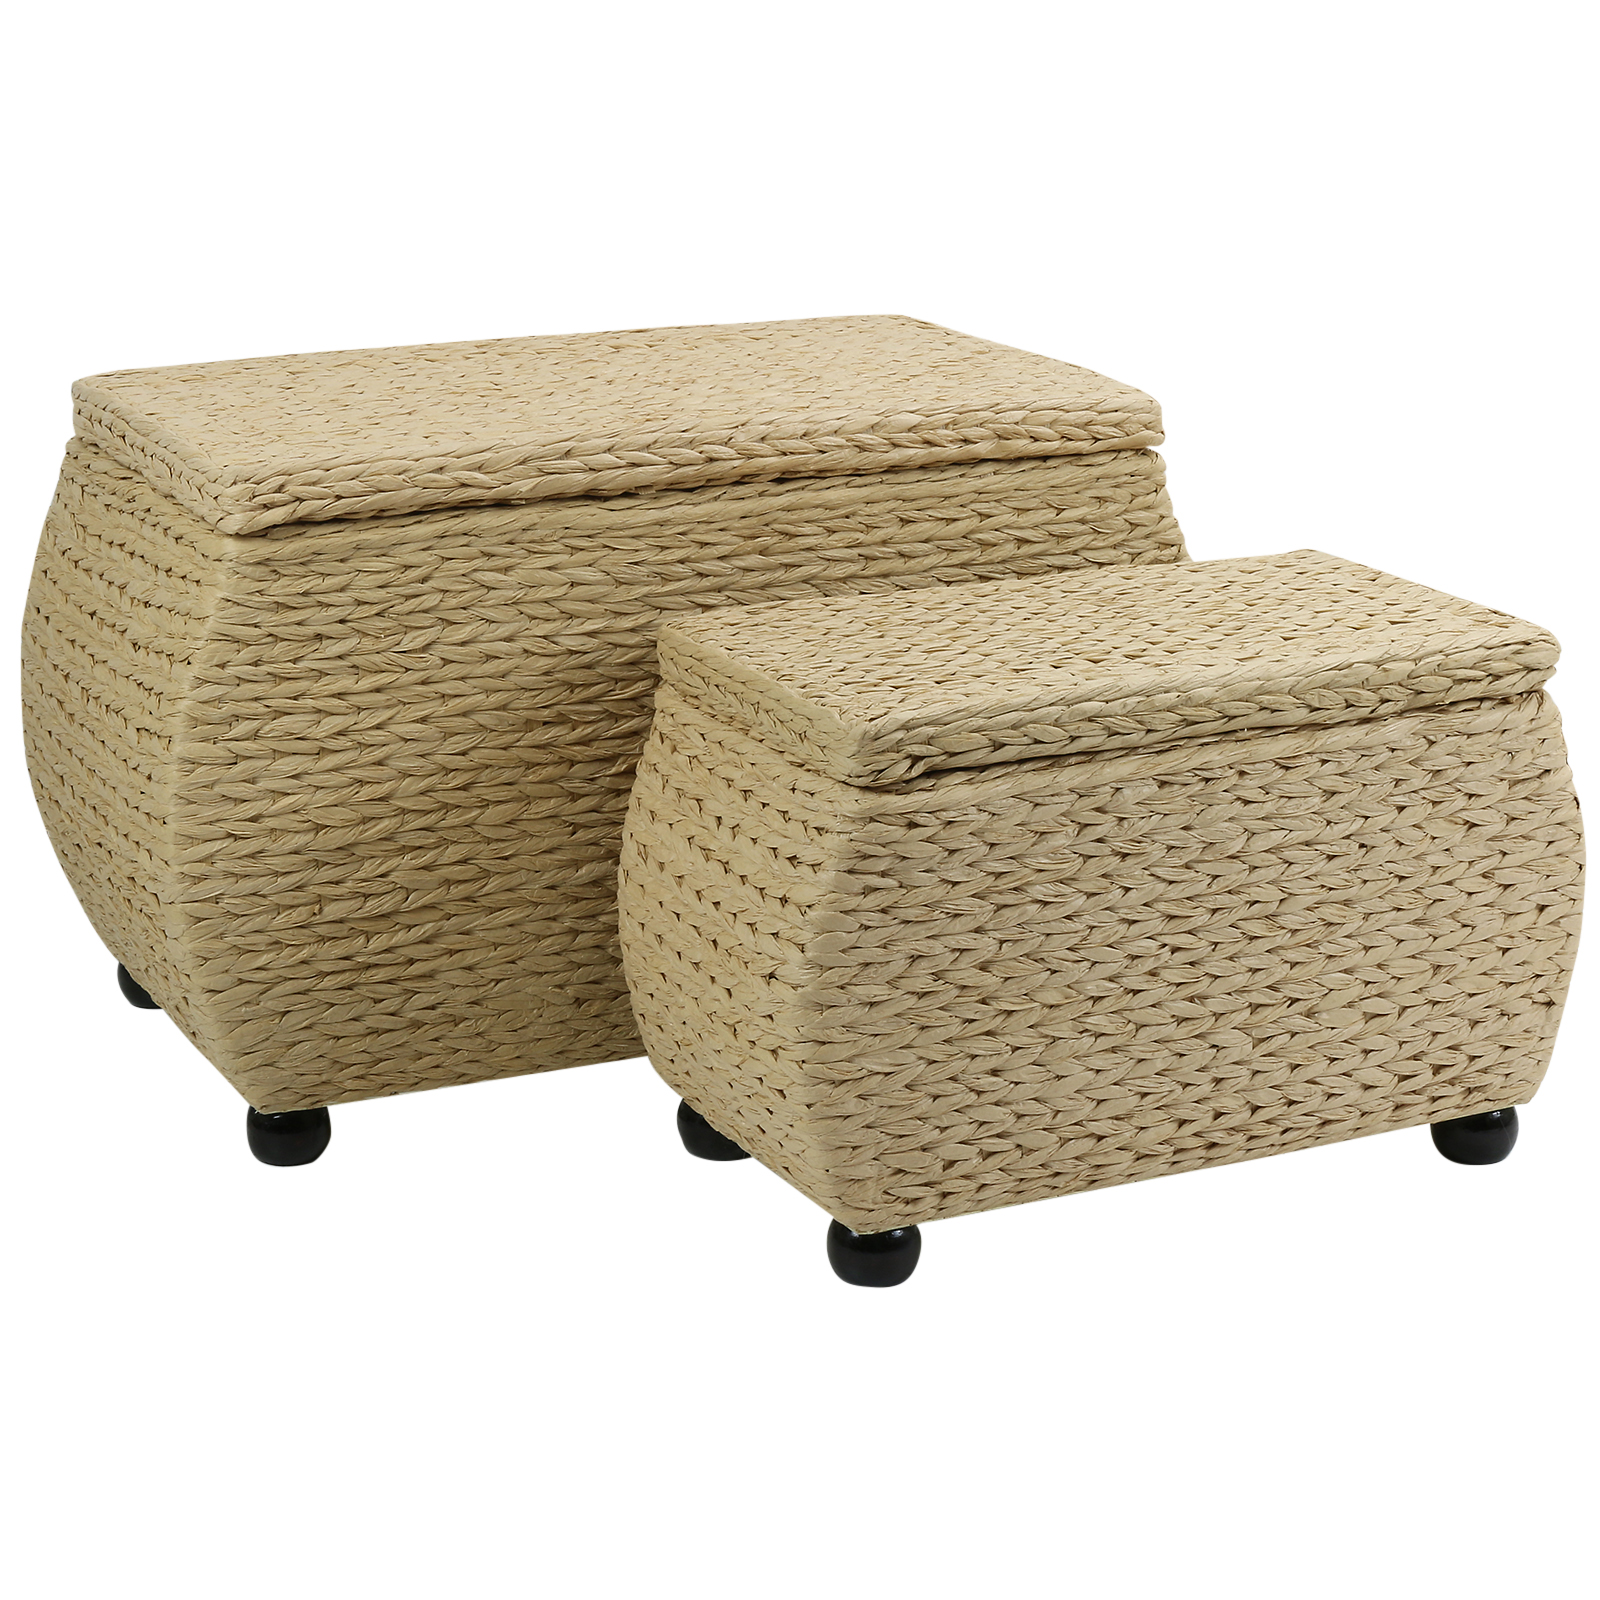 HARTLEYS NATURAL TWIN STORAGE TRUNK/STOOL BEDDING/BLANKET